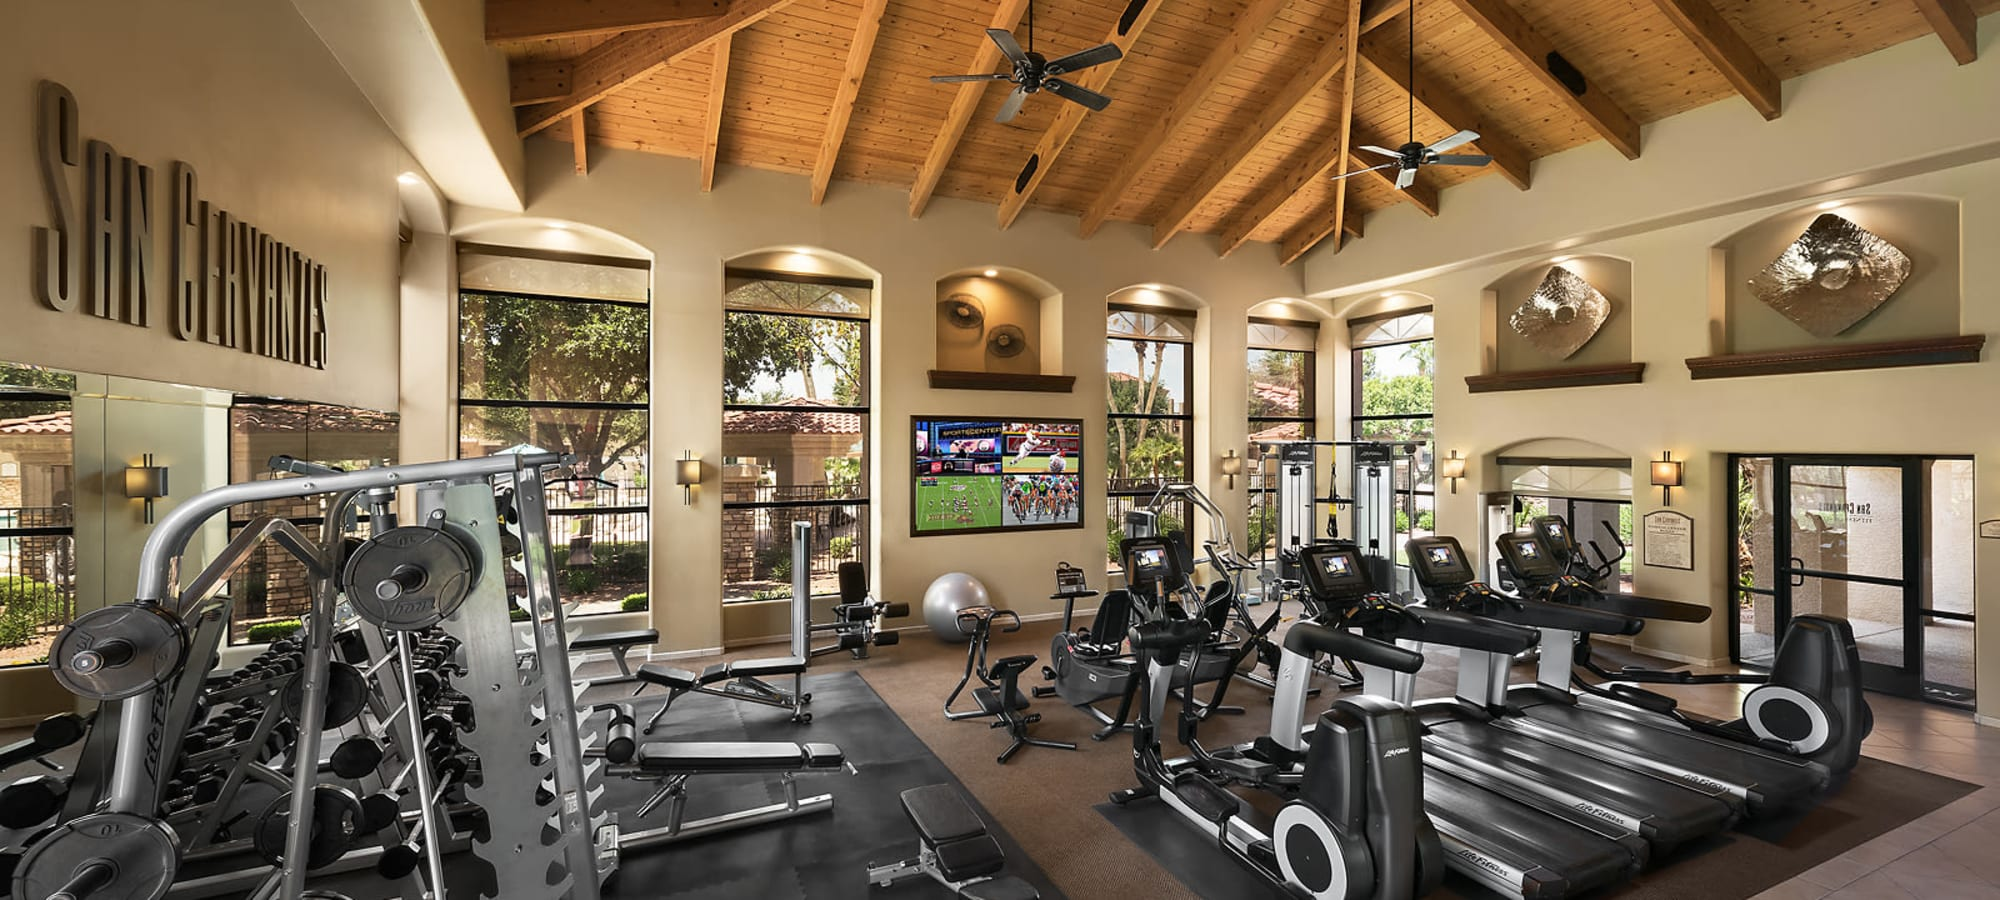 Luxury Fitness Center at San Cervantes in Chandler, Arizona